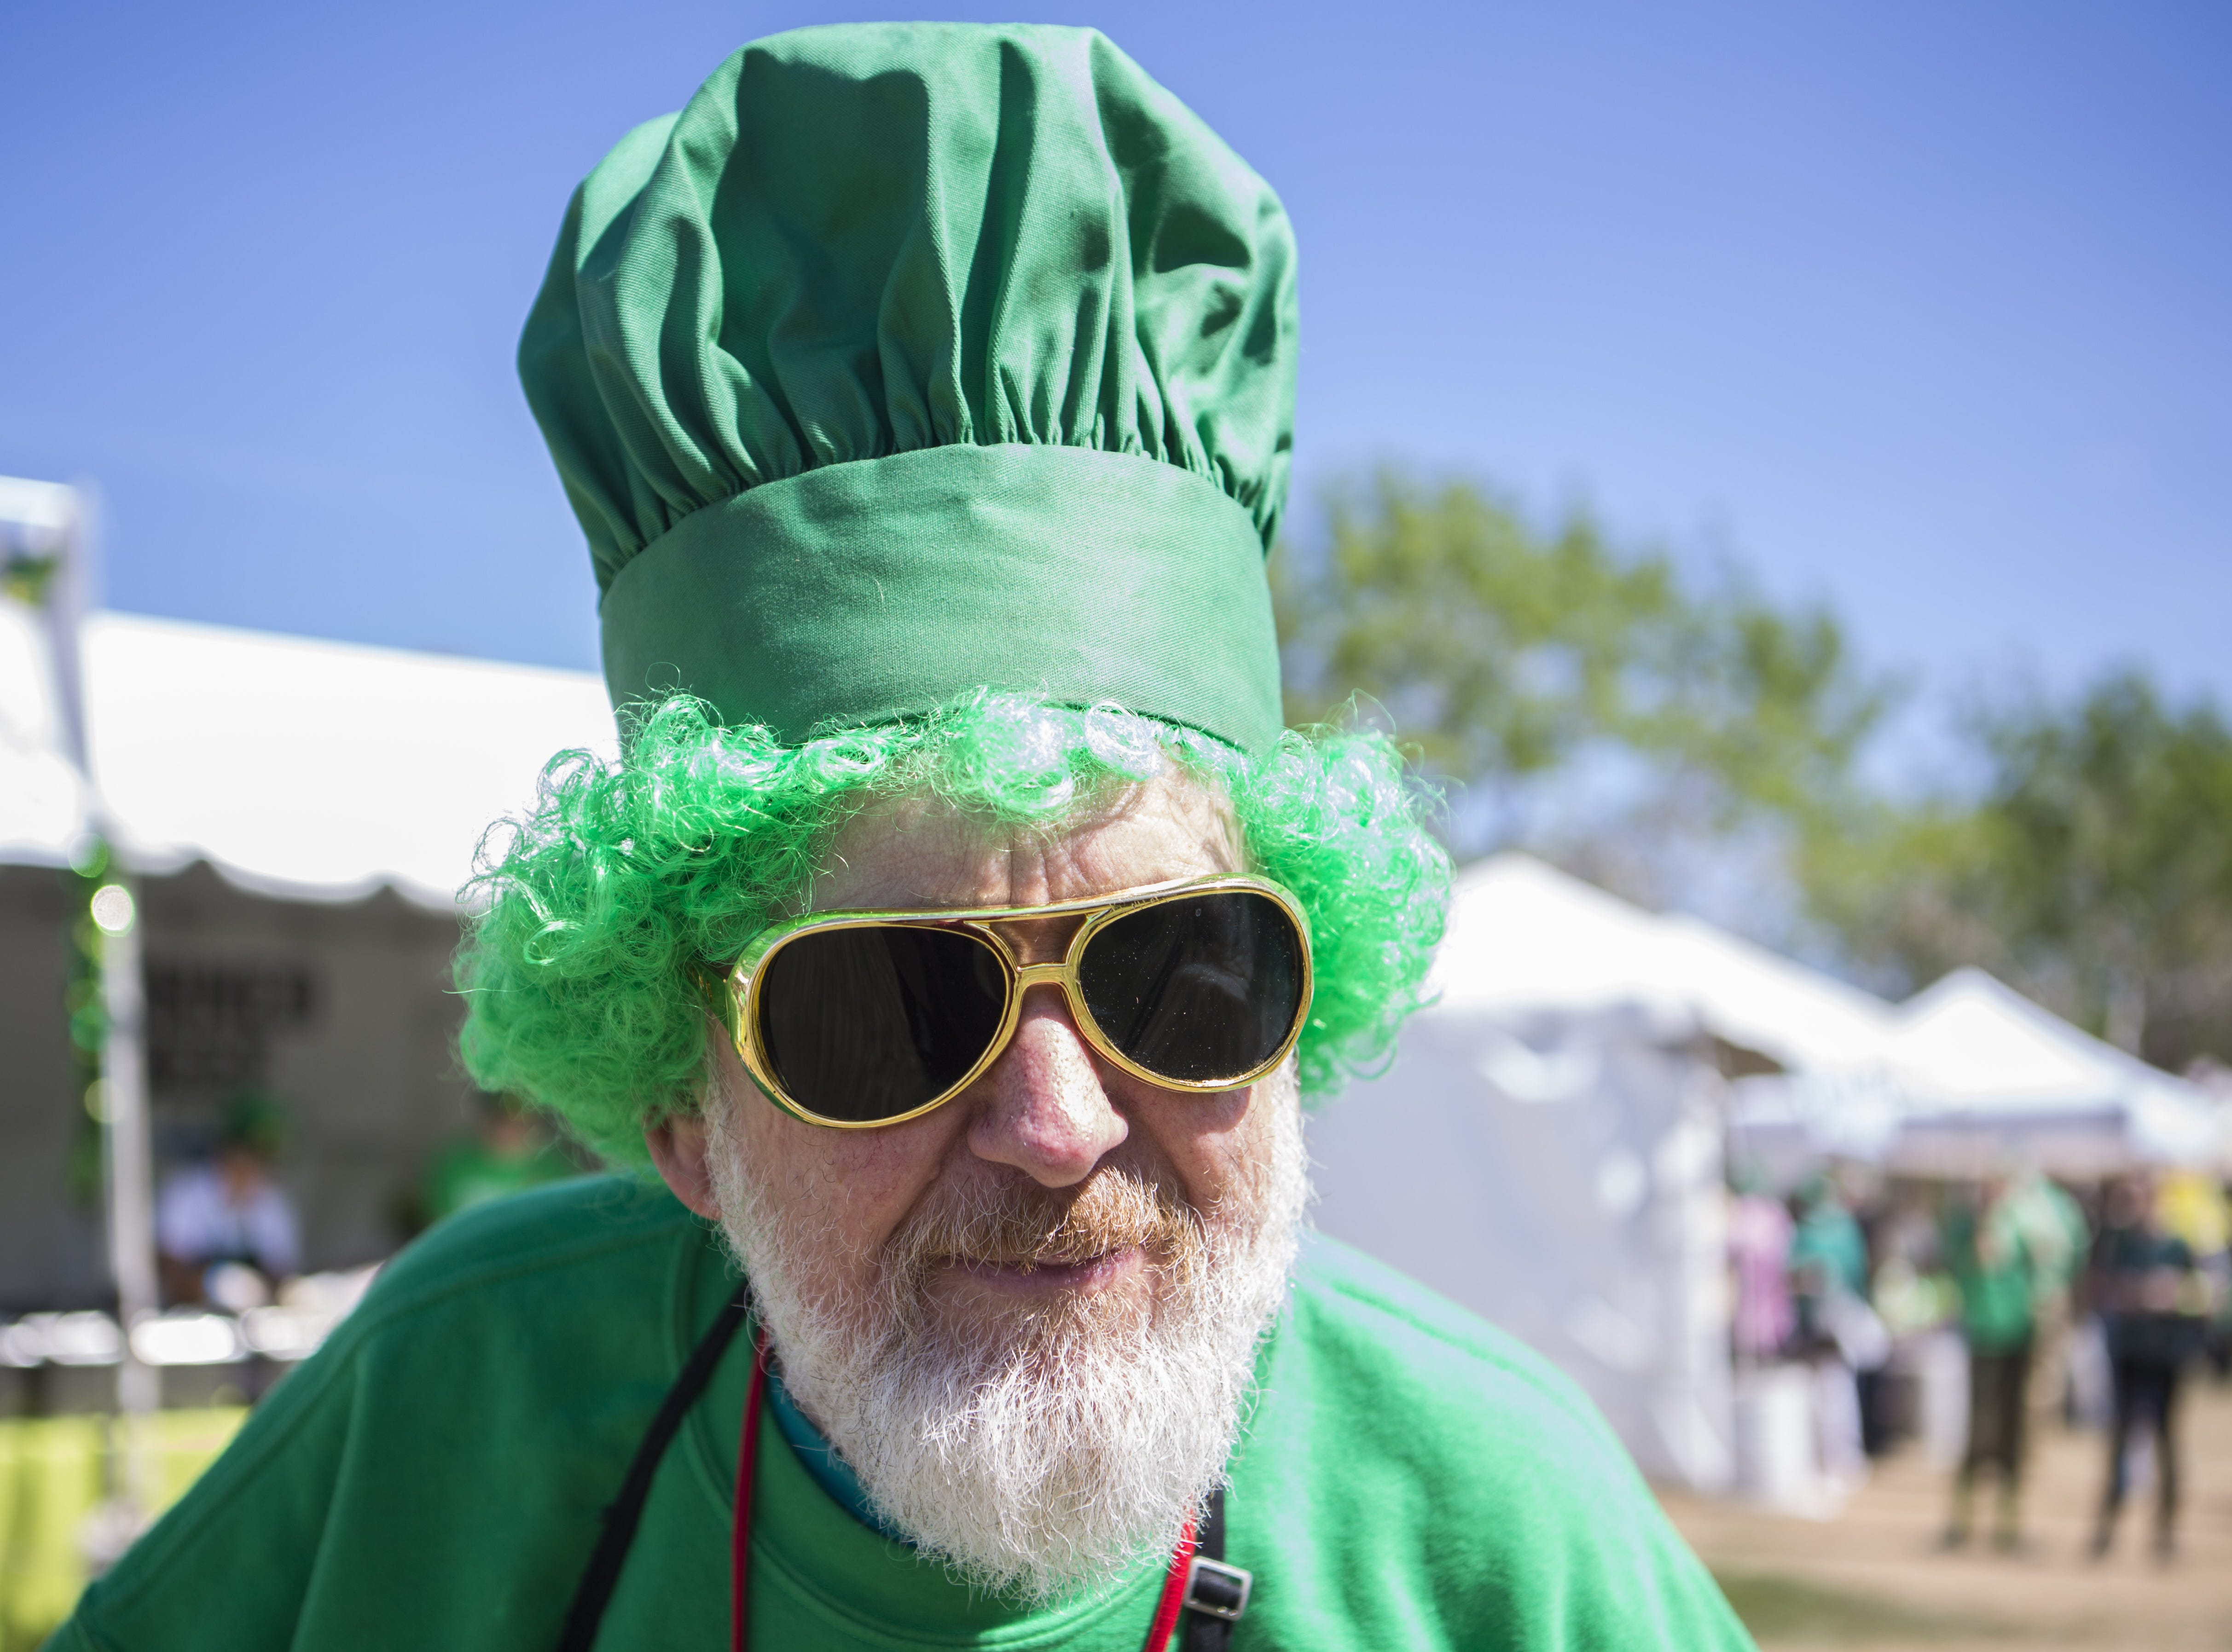 The 2018 St. Patrick's Day Faire takes place on Saturday, March 18, in the Margaret T. Hance Park in downtown Phoenix. Johanna Huckeba/azcentral